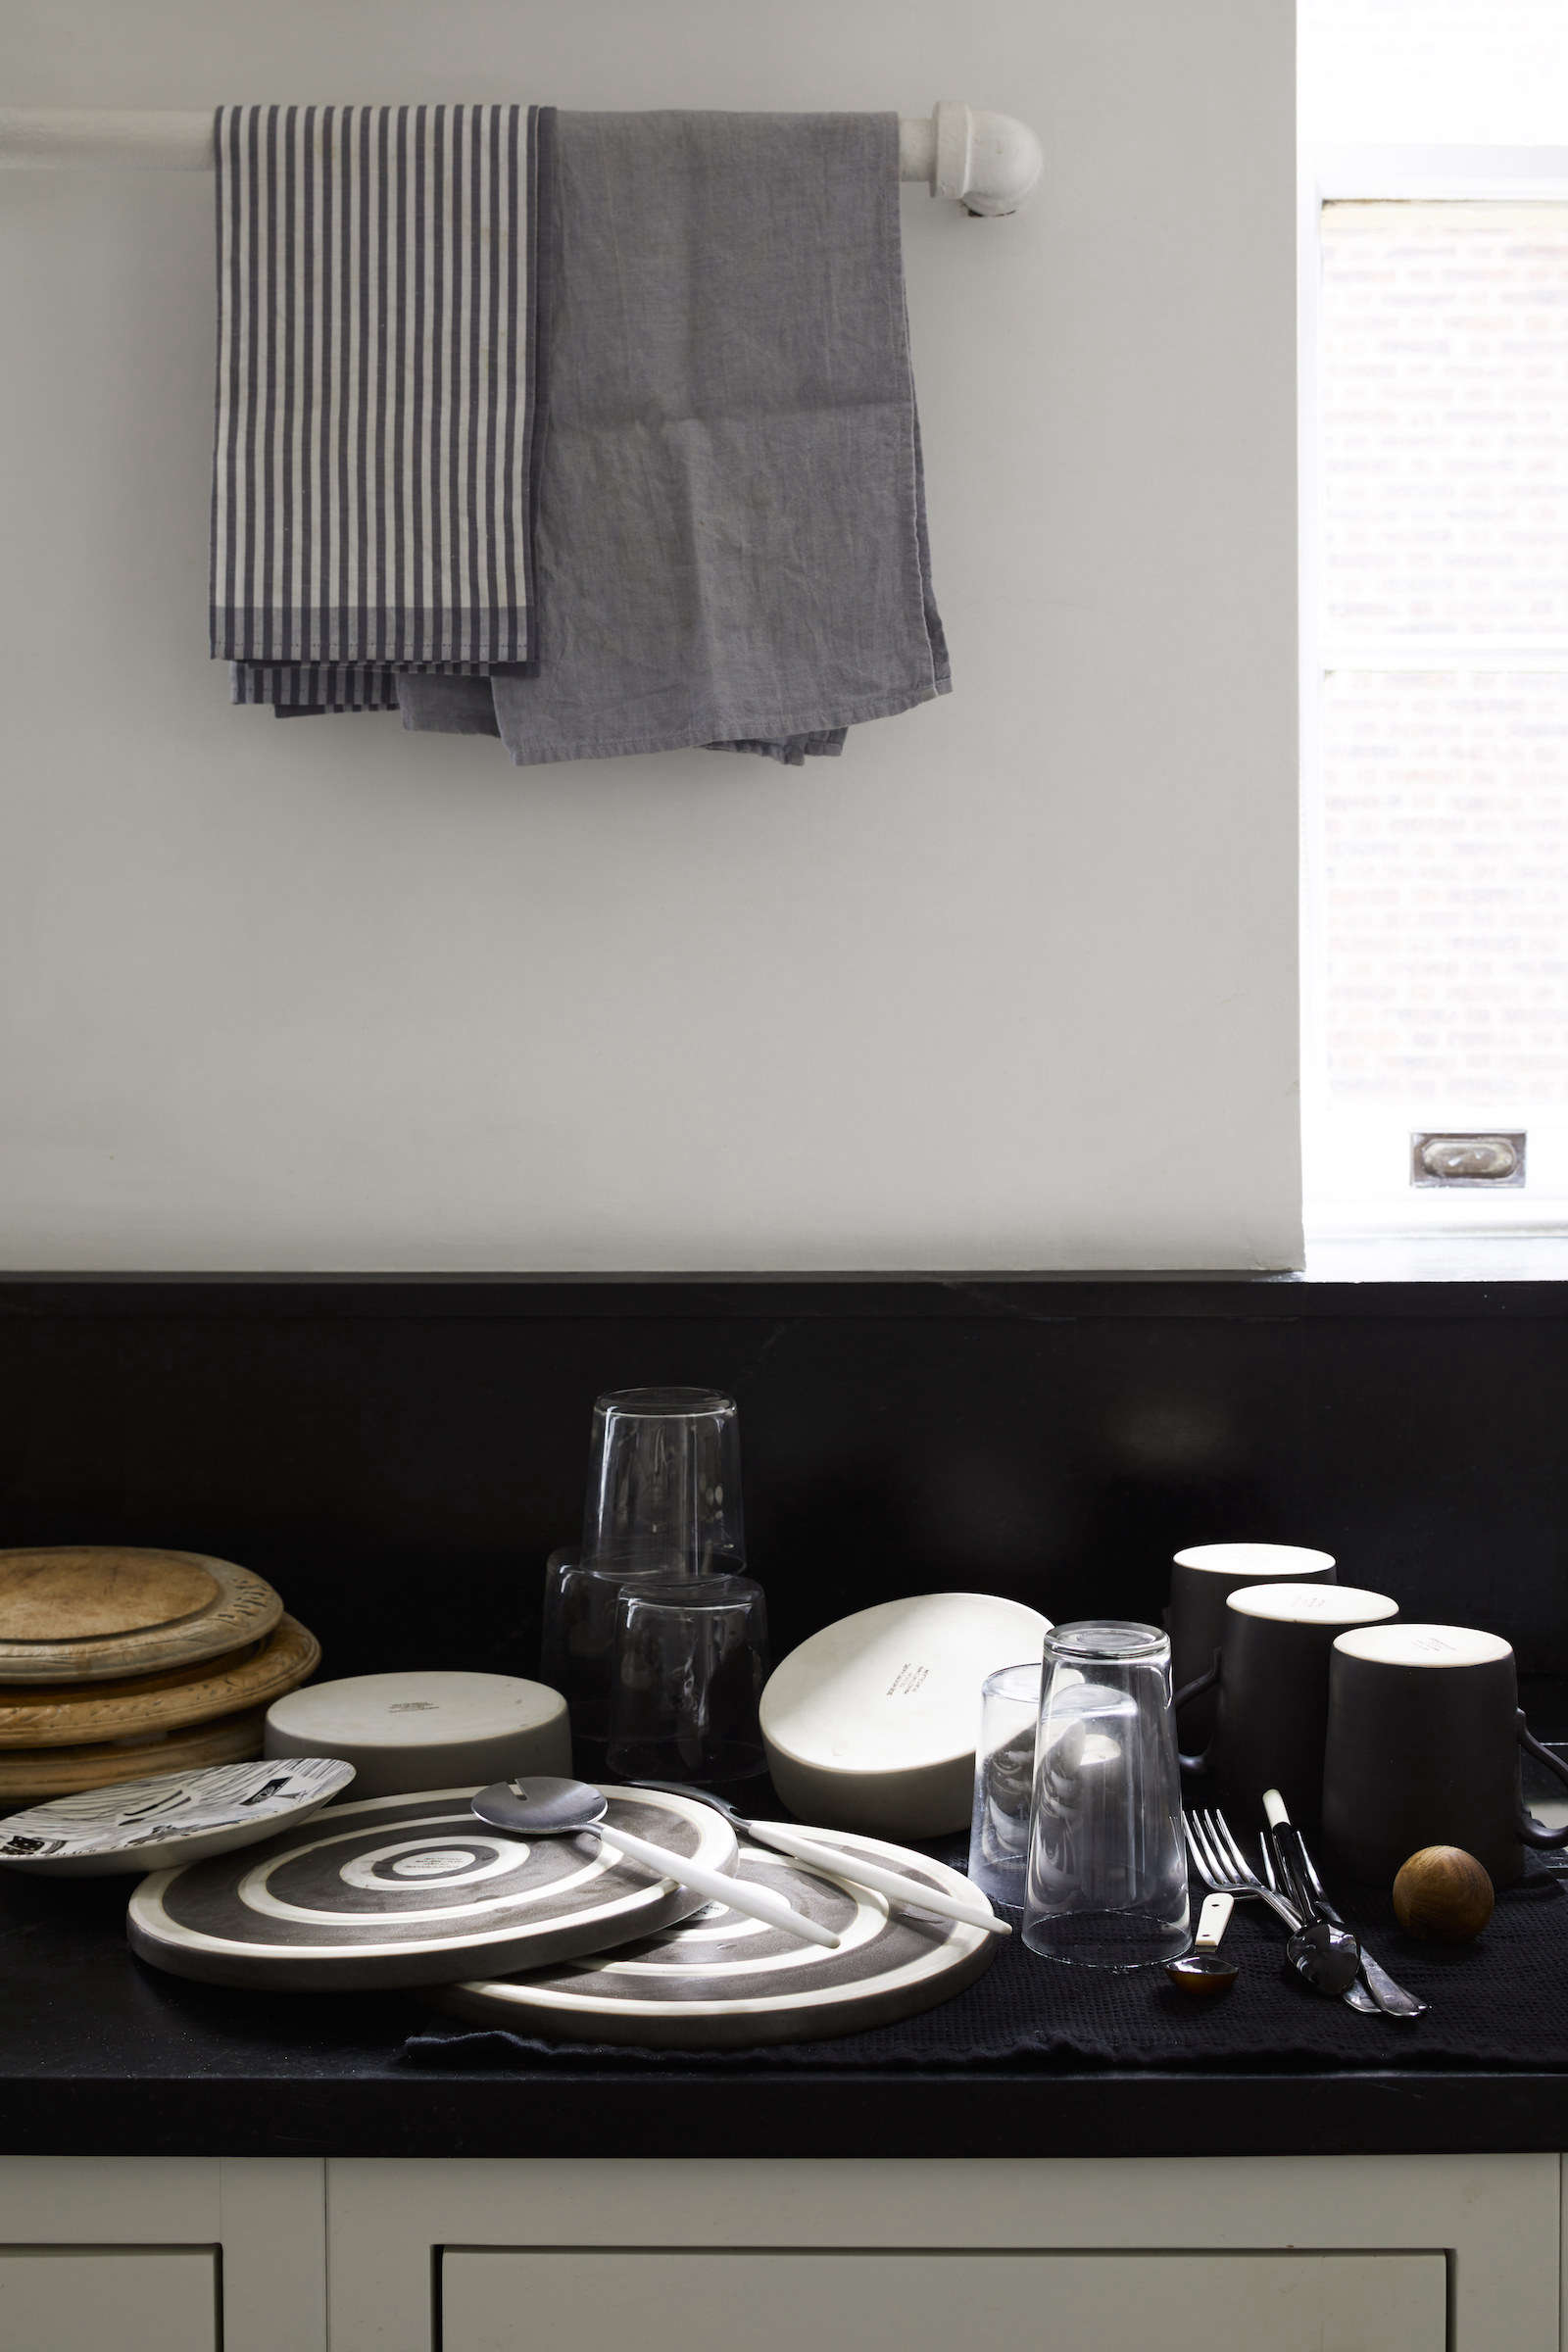 Matthew Axe Jackson Heights Apartment Dish Drying Towels by Eric Piasecki